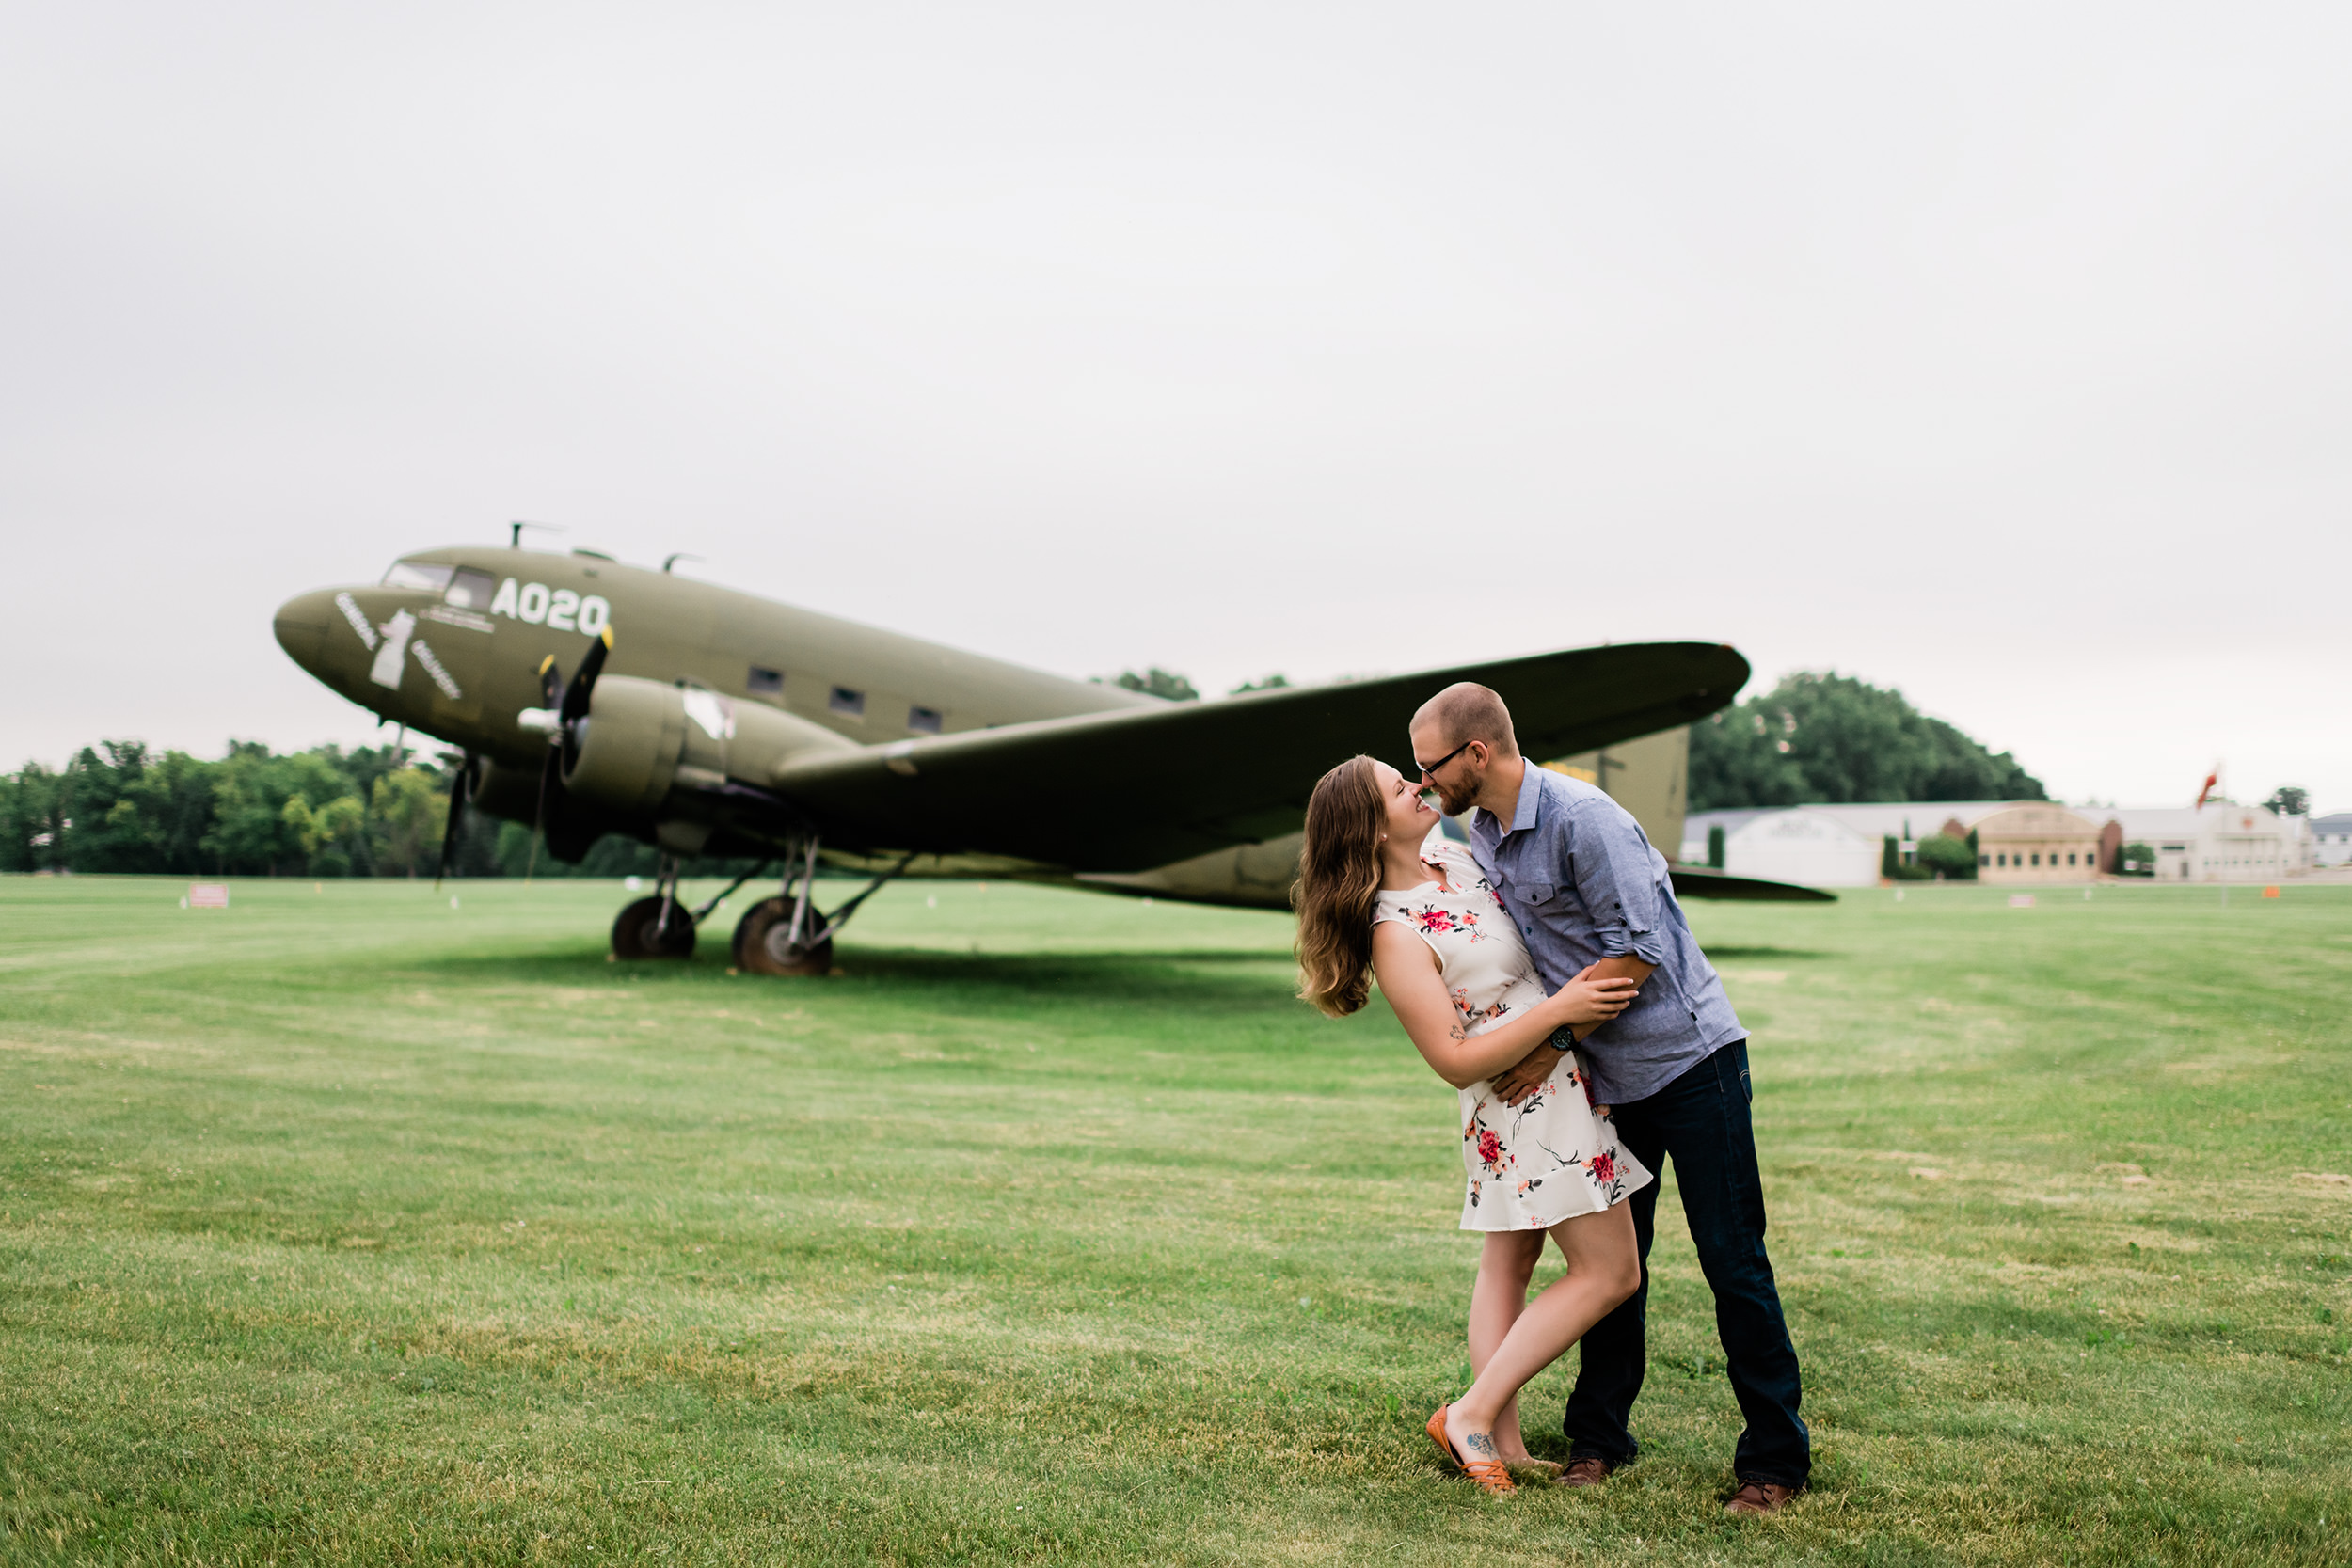 Engaged couple kissing in front of an airplane